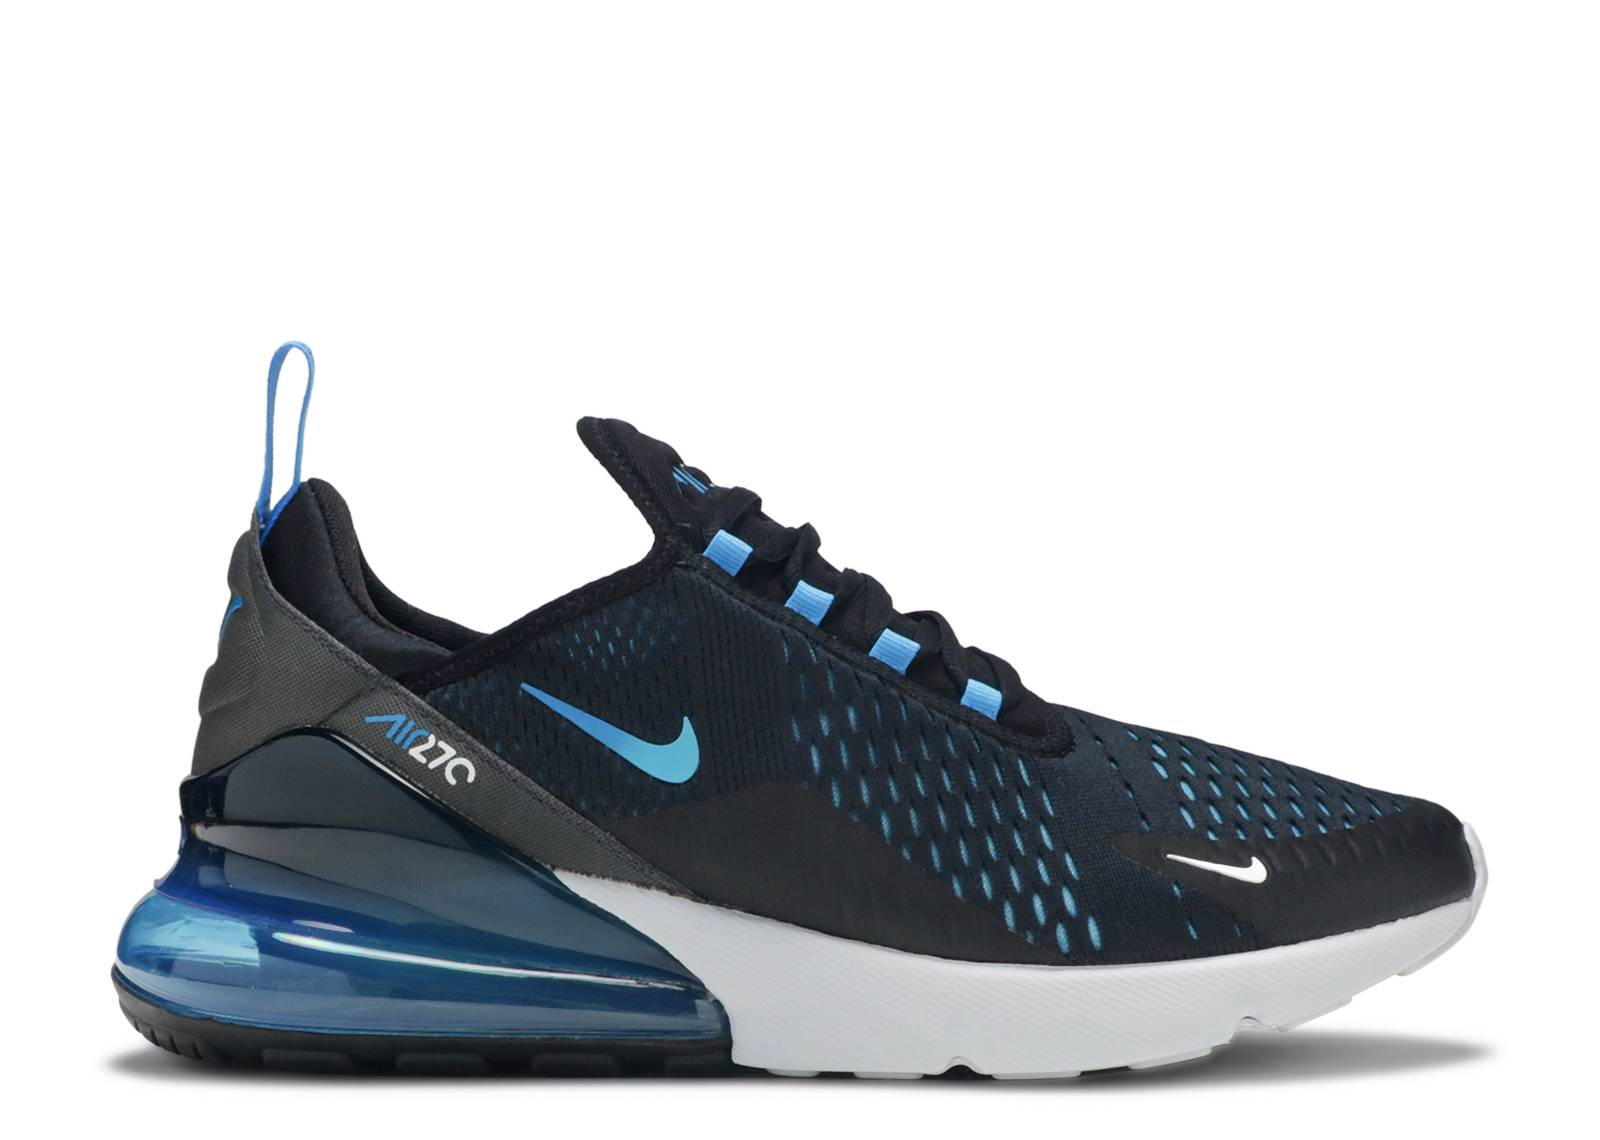 the best attitude d4283 2a004 Nike Air Max 270 - Men's & Women's Shoes | Flight Club